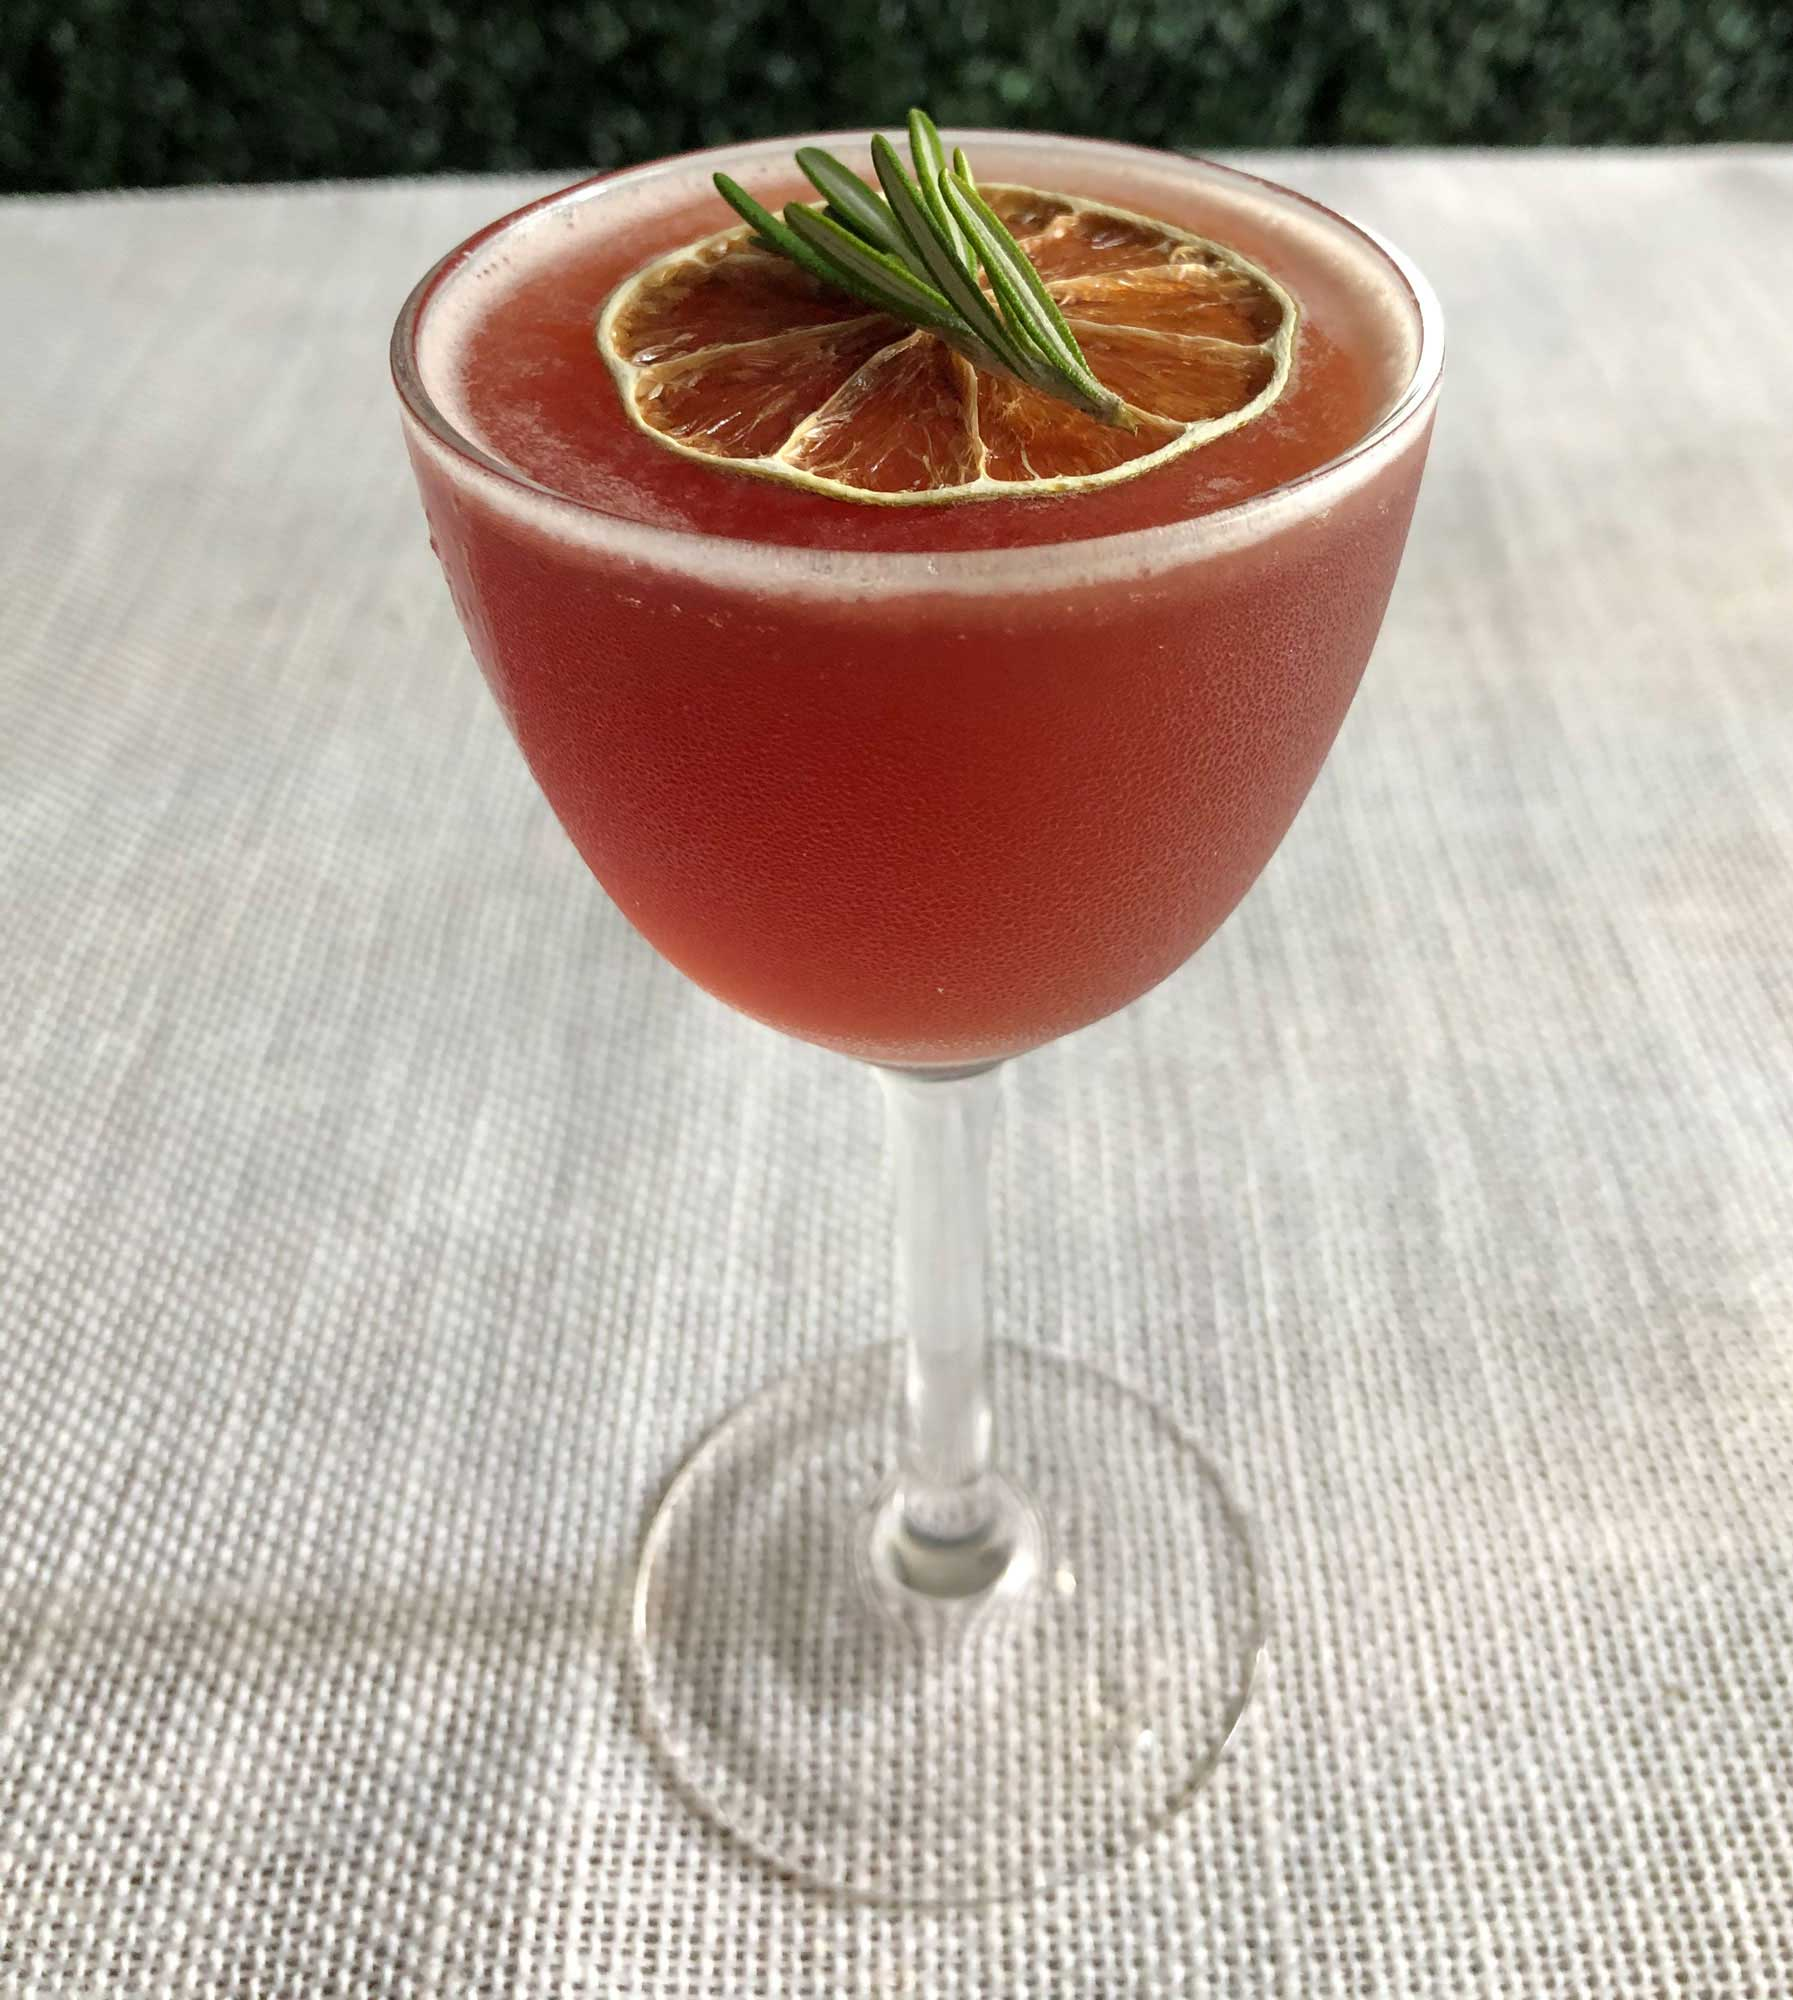 An example of the Alpine Hippie Juice, the mixed drink (cocktail), by Based on a drink by Snack Boys, Milwaukee, featuring Averell Damson Plum Gin Liqueur, cognac, Zirbenz Stone Pine Liqueur of the Alps, grapefruit juice, and lime juice; photo by Lee Edwards